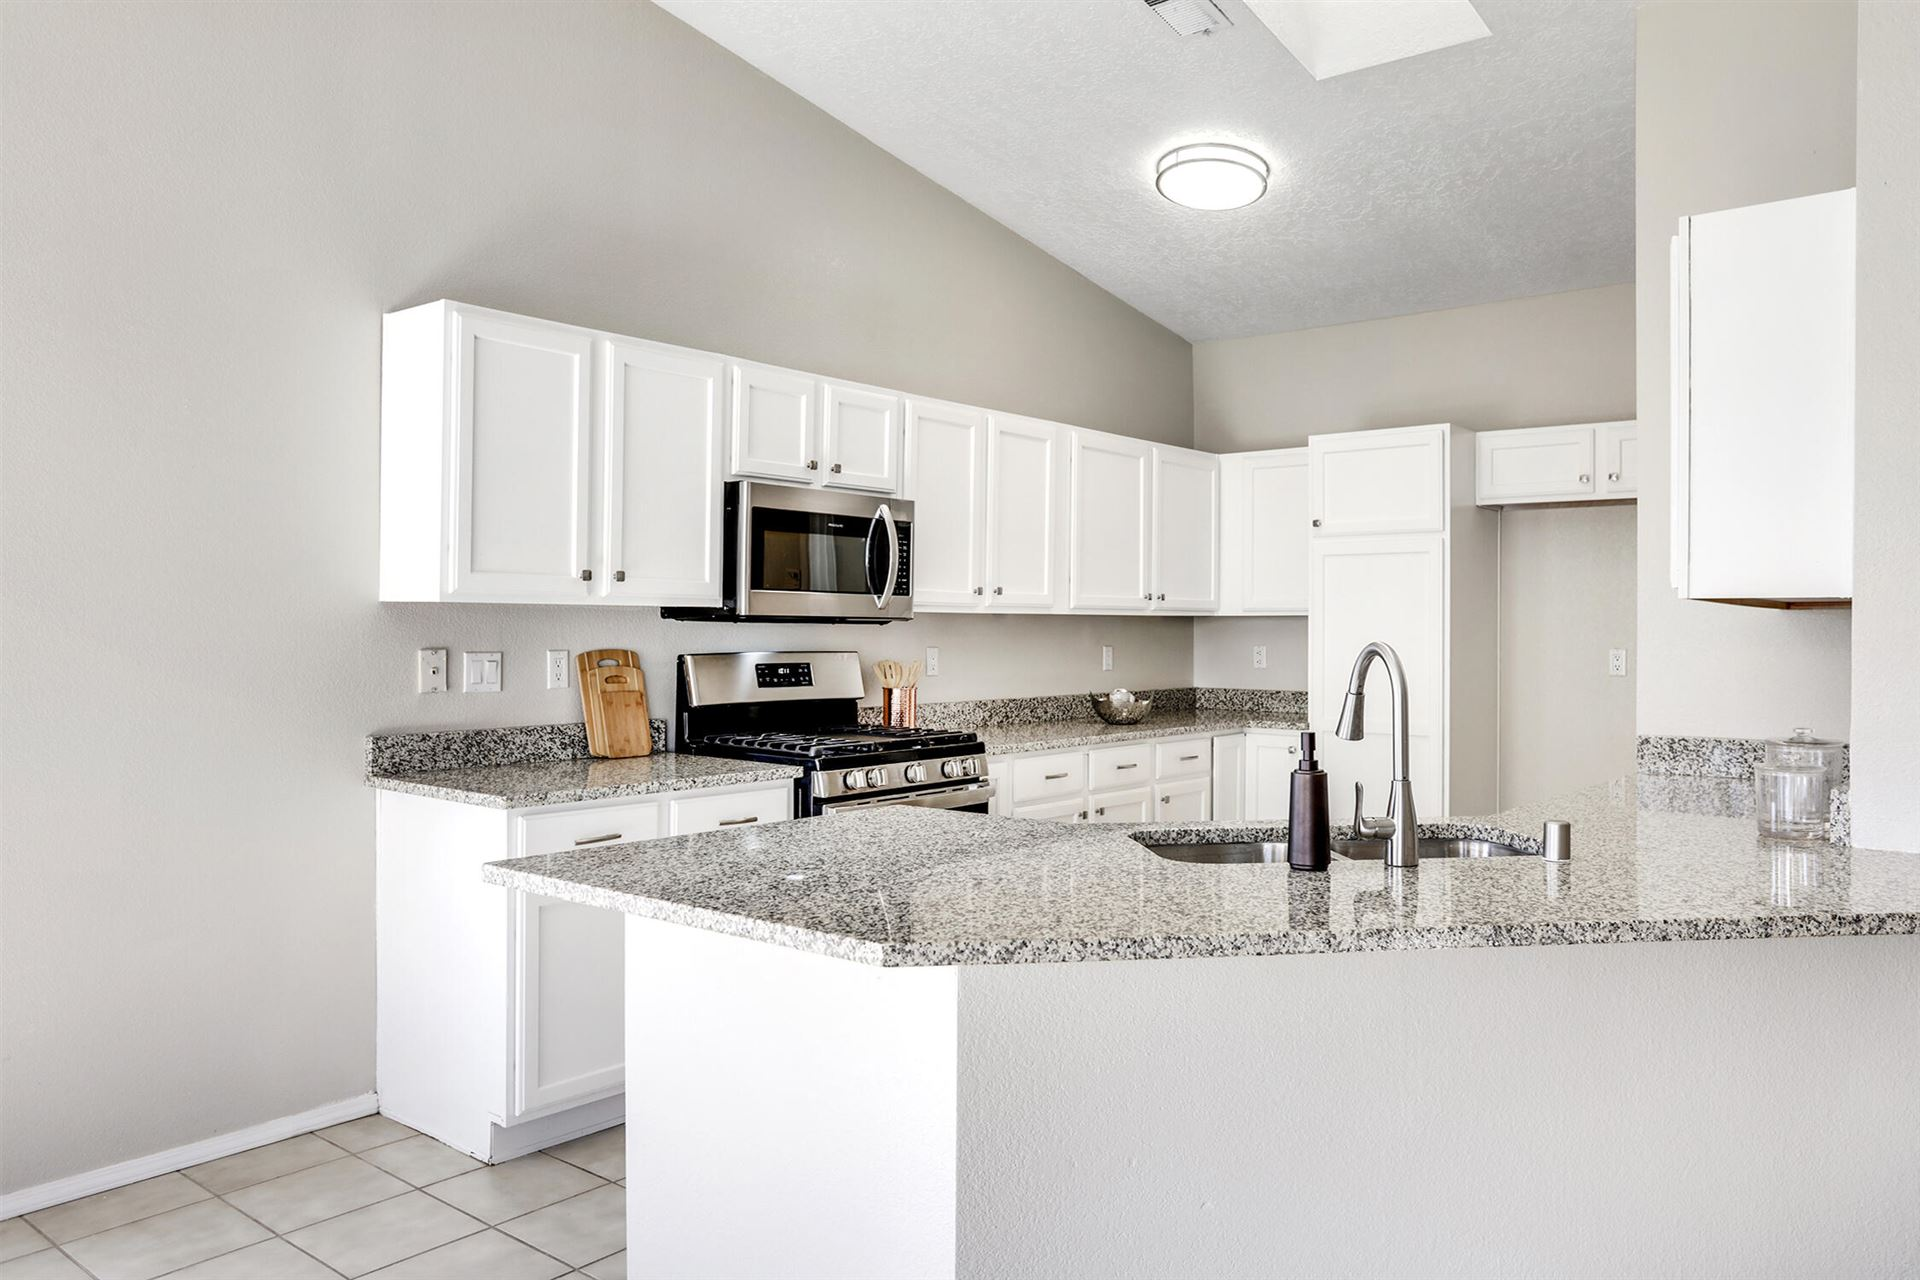 Photo for 1301 SUMMERFIELD Place SW, Albuquerque, NM 87121 (MLS # 1001723)